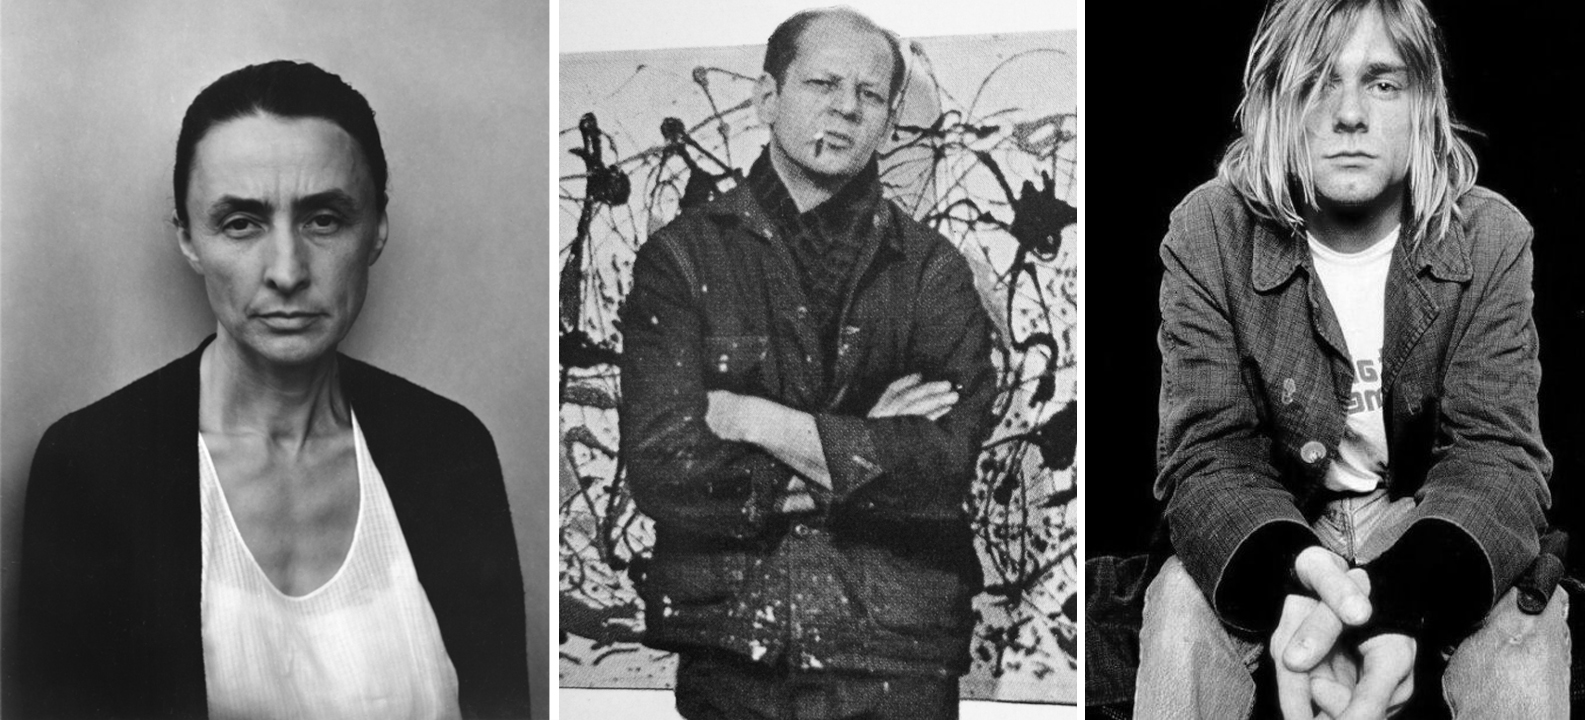 Left to right: Georgia O'Keeffe, Jackson Pollock, Kurt Cobain